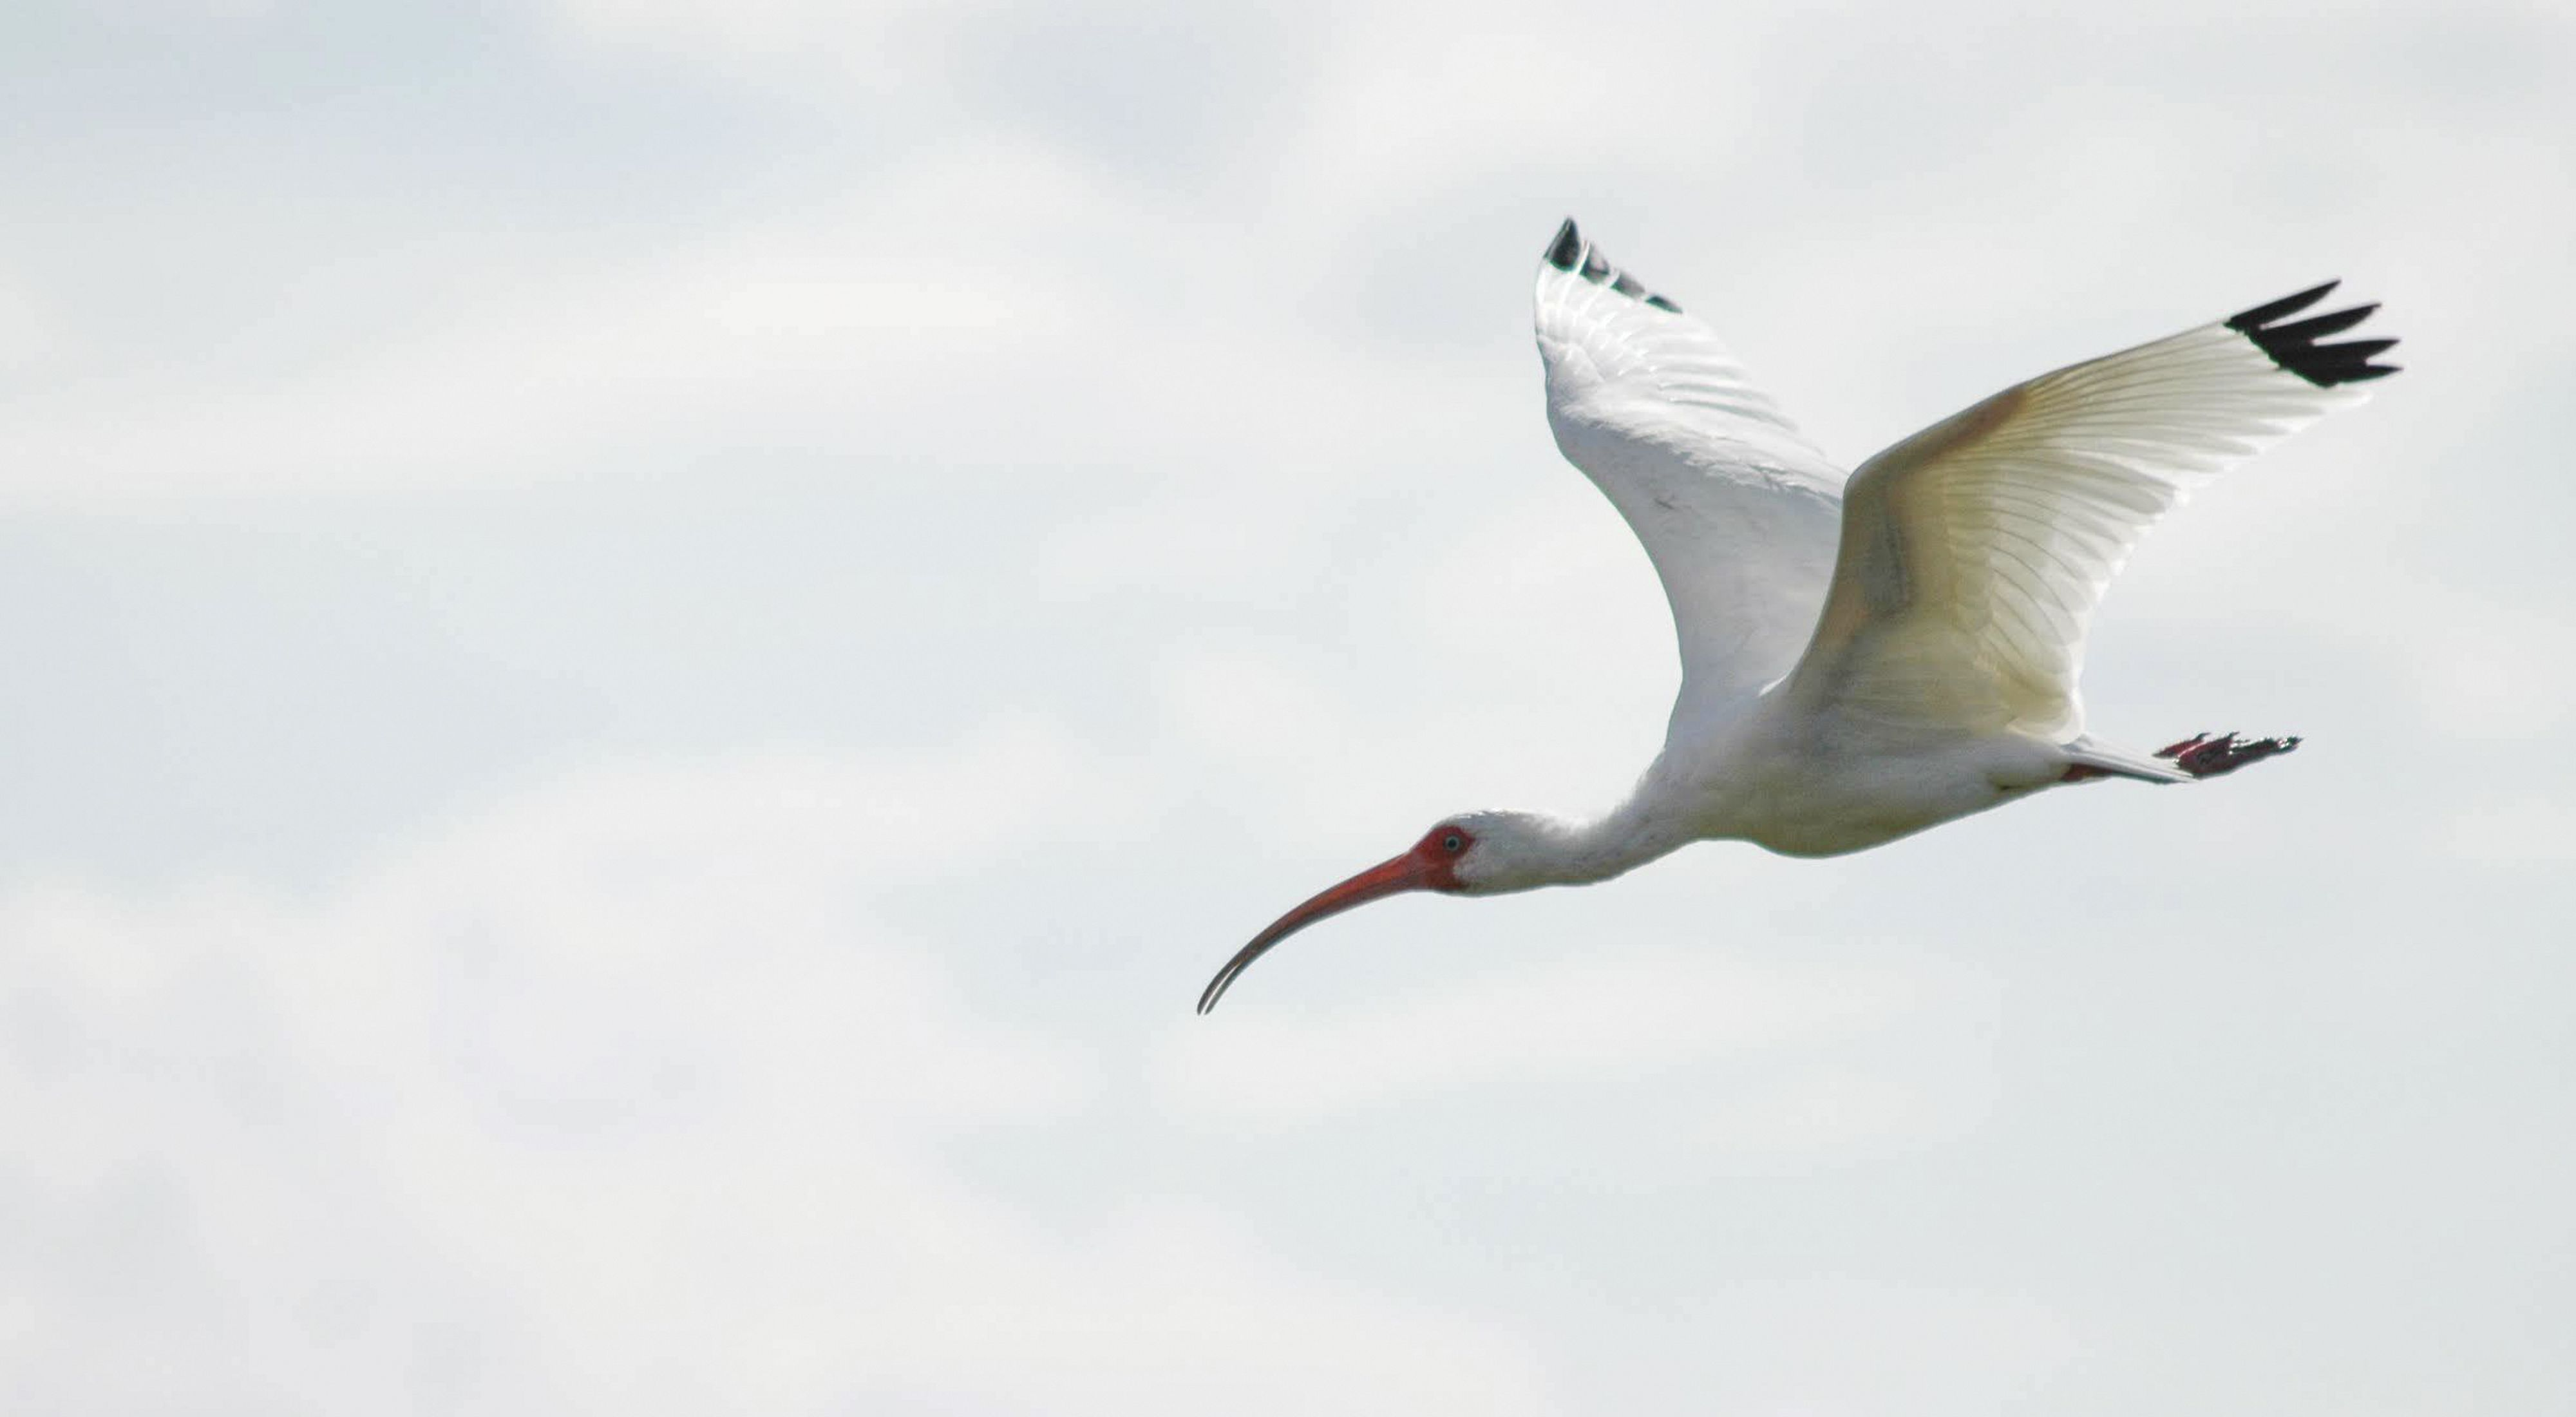 A large white bird with black wing tips and a red face, flying through a blueish gray sky.